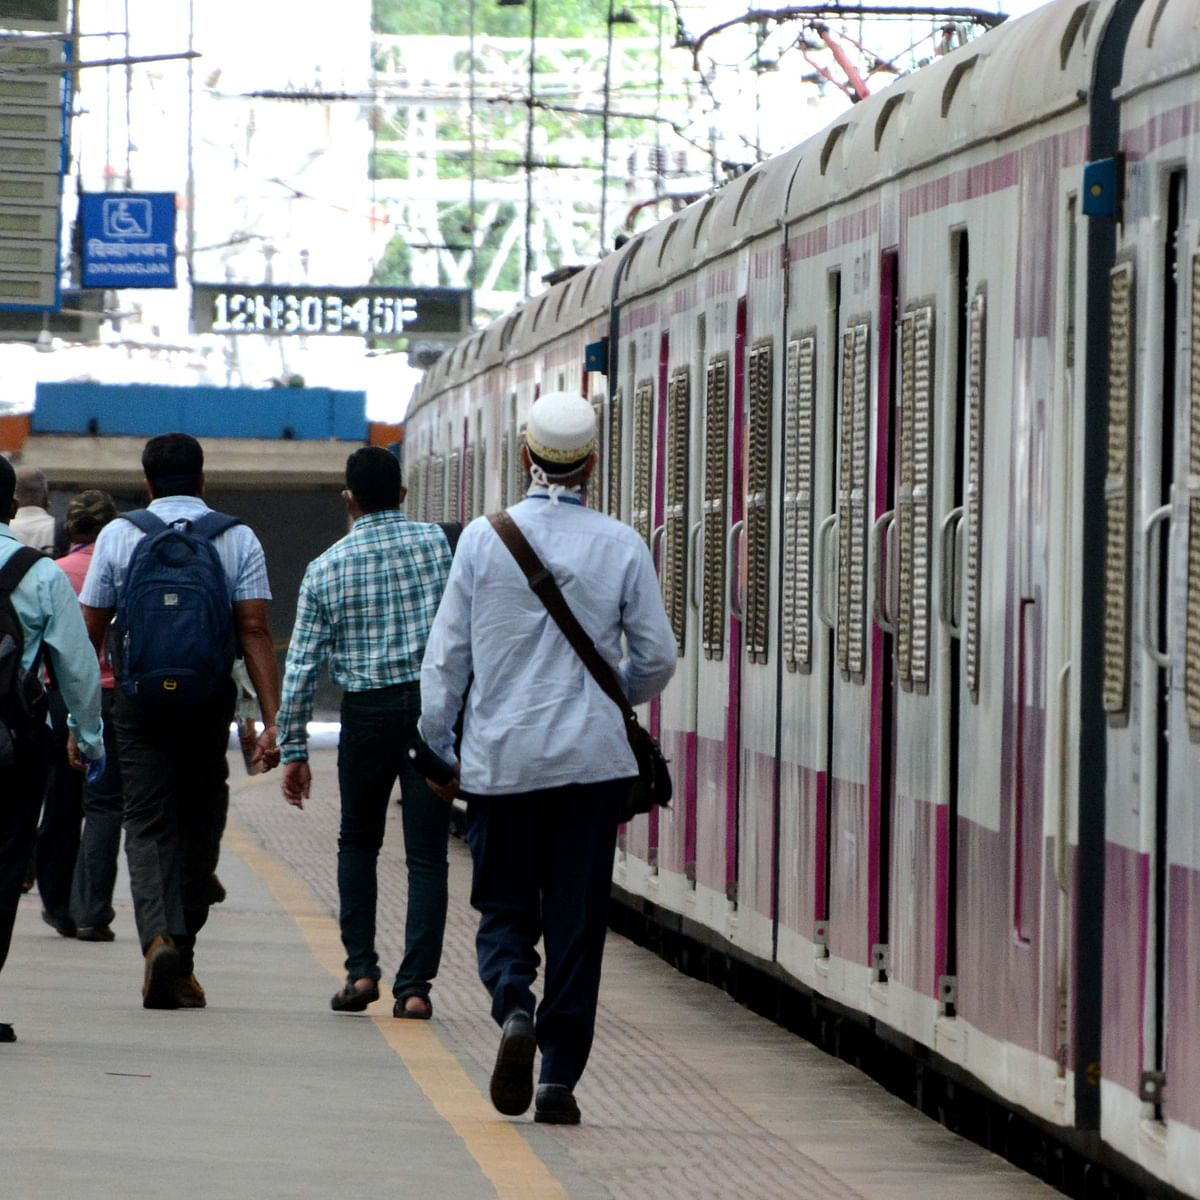 'Only 9.6 lakh passengers can travel': WR, CR on resuming local trains for general public